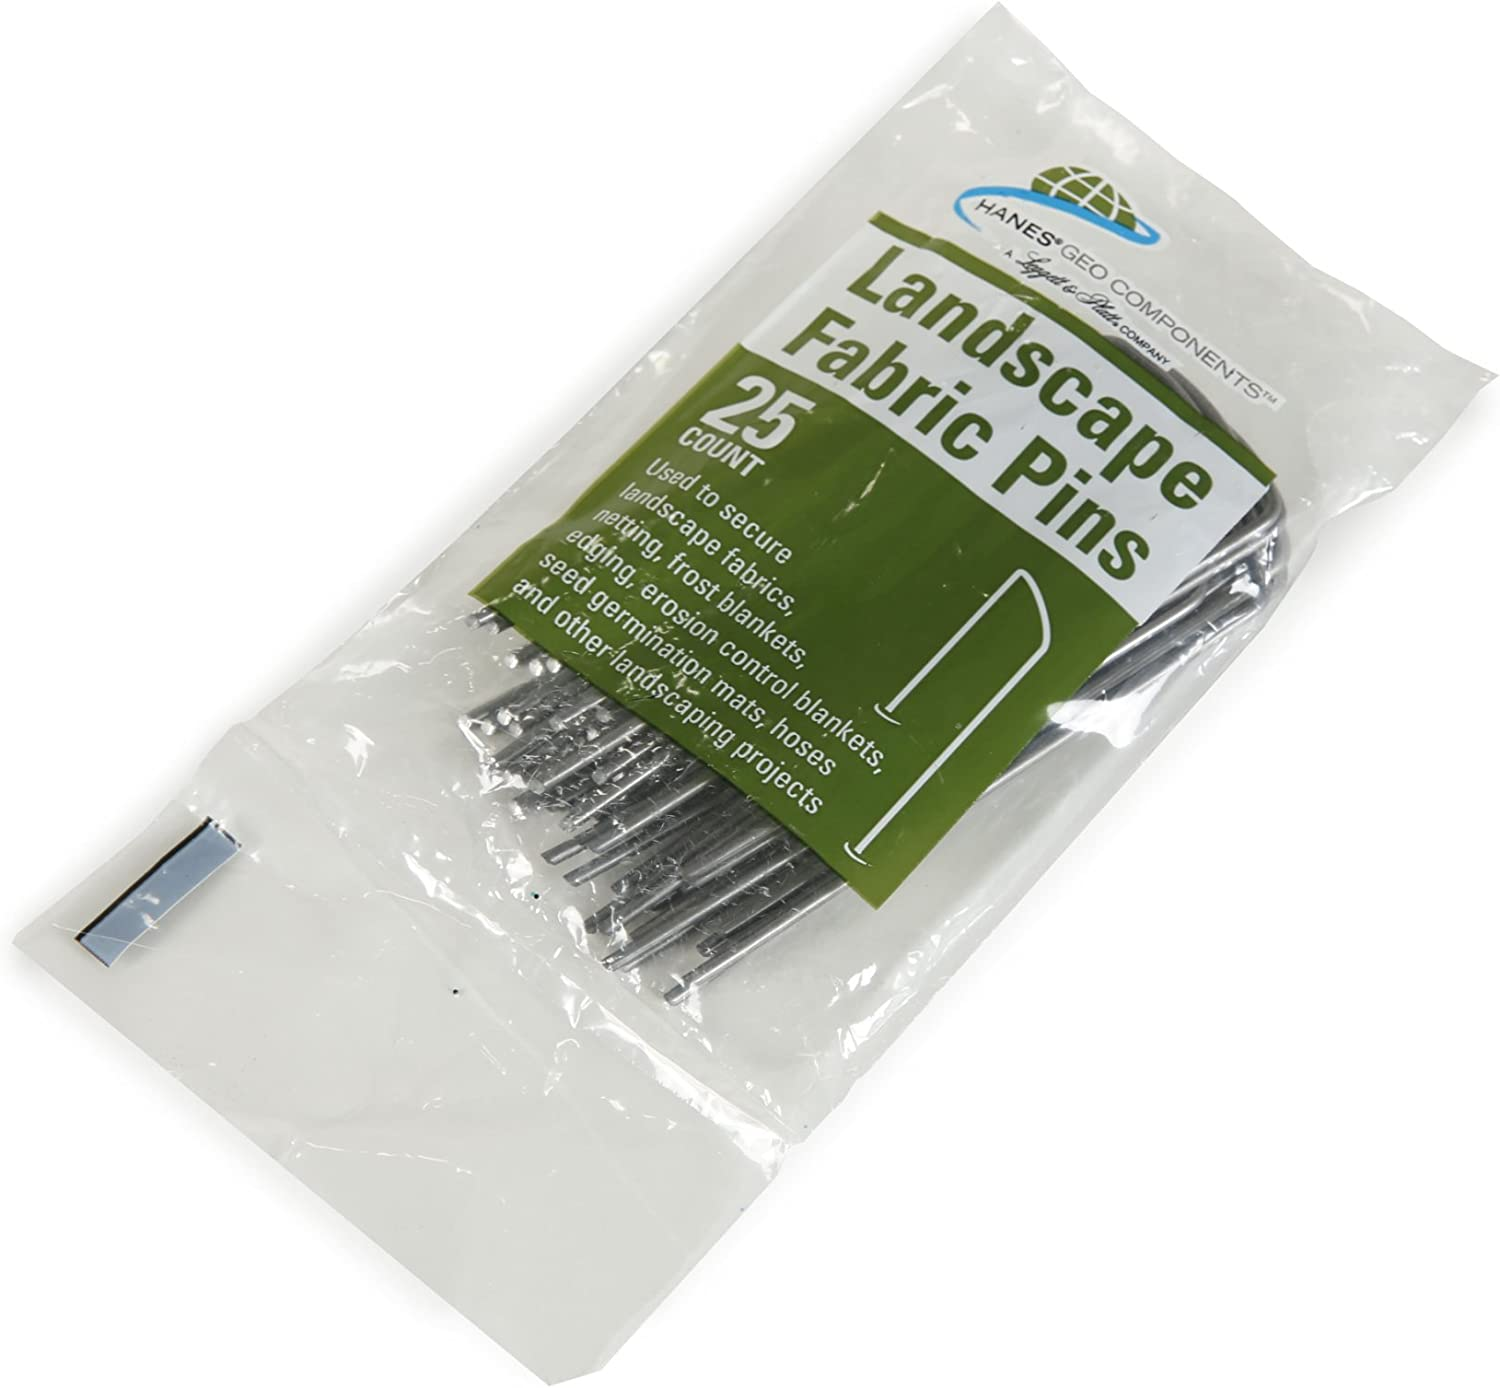 Hanes Geo Components 85195 Landscape Fabric Staples, 4-Inch - 25 Count